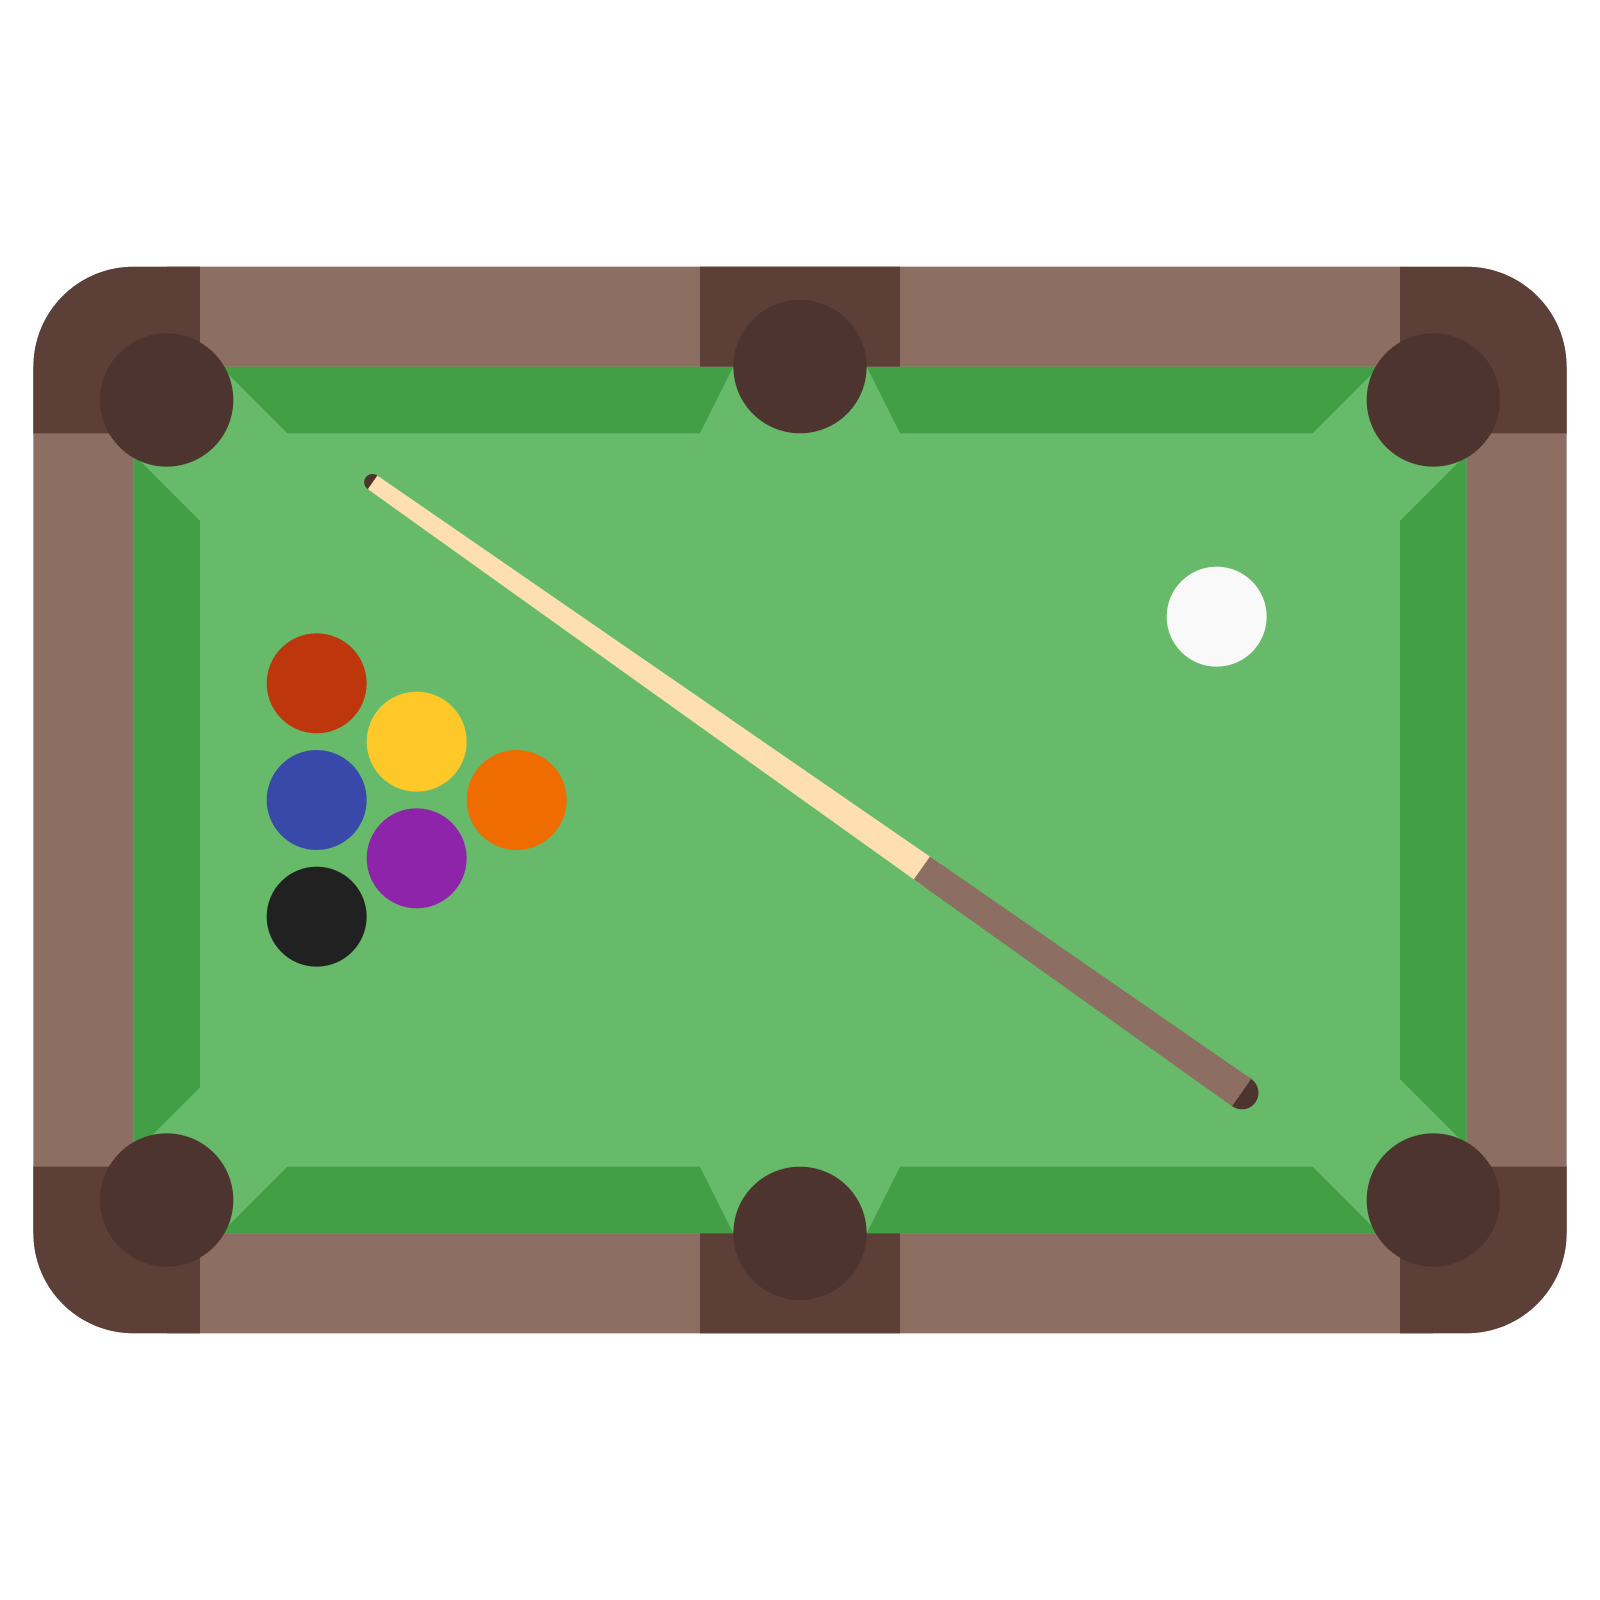 vector royalty free stock Pool table movers logo. Billiards clipart billiard room.